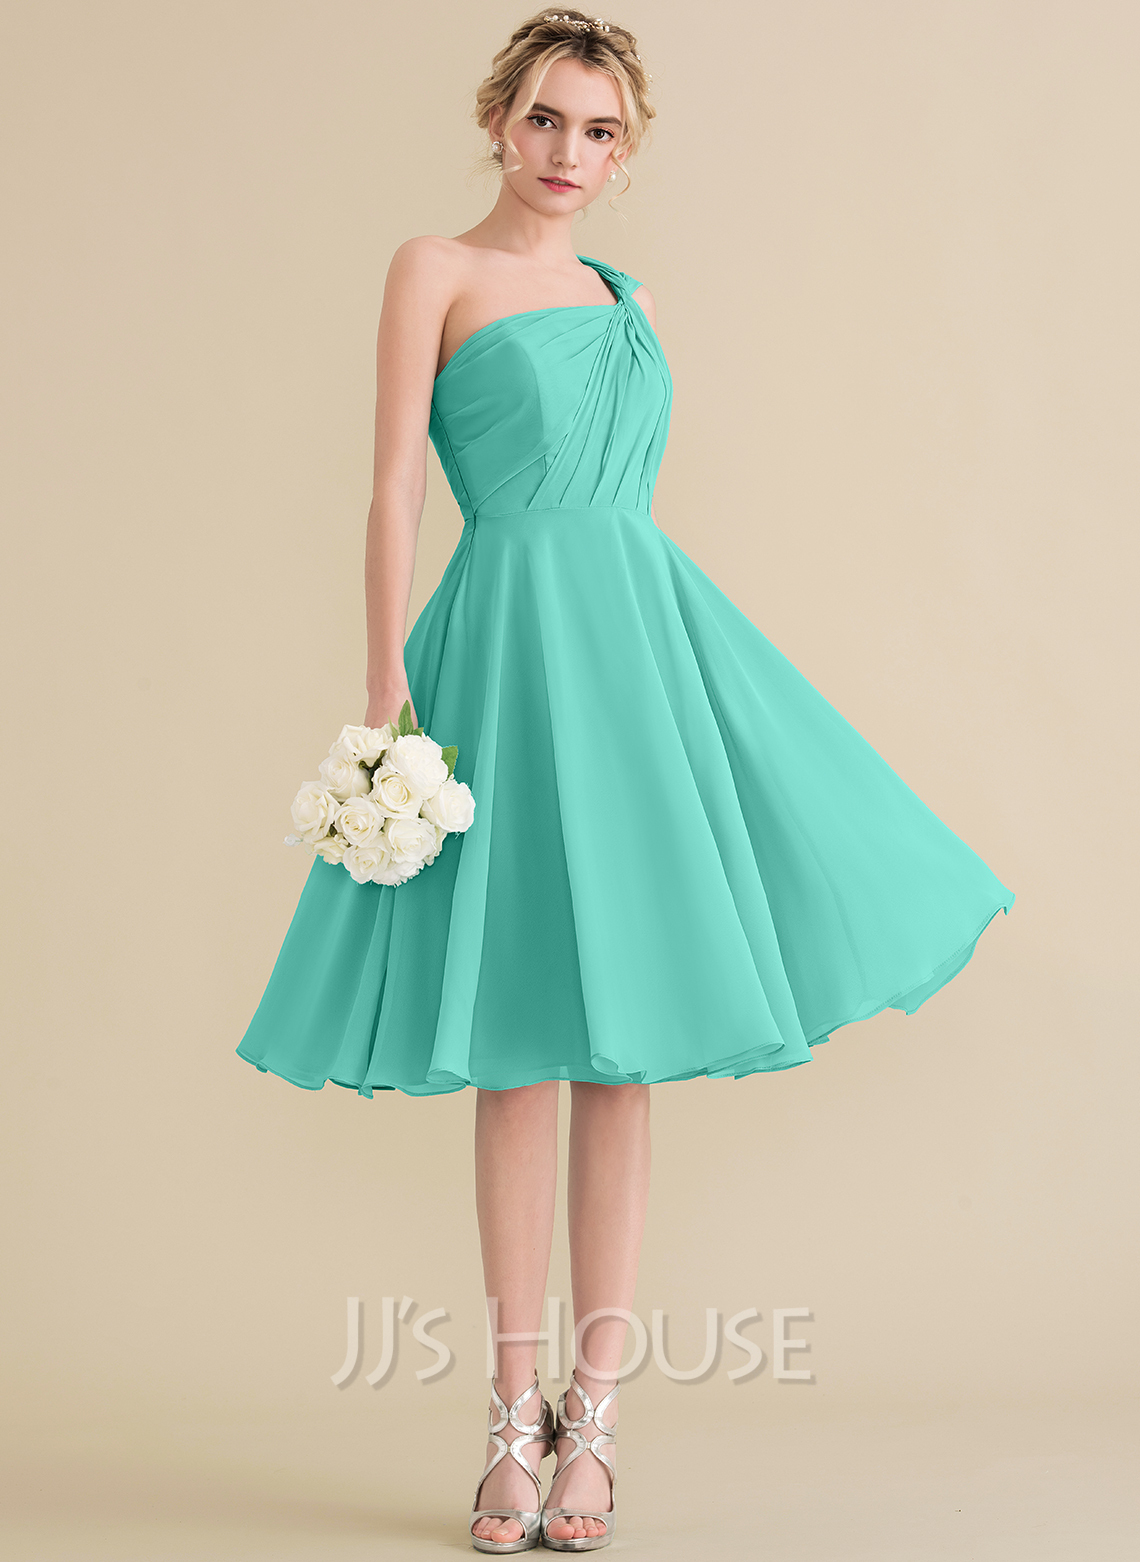 0827cd1b5 A-Line/Princess One-Shoulder Knee-Length Chiffon Bridesmaid Dress With  Ruffle. Loading zoom